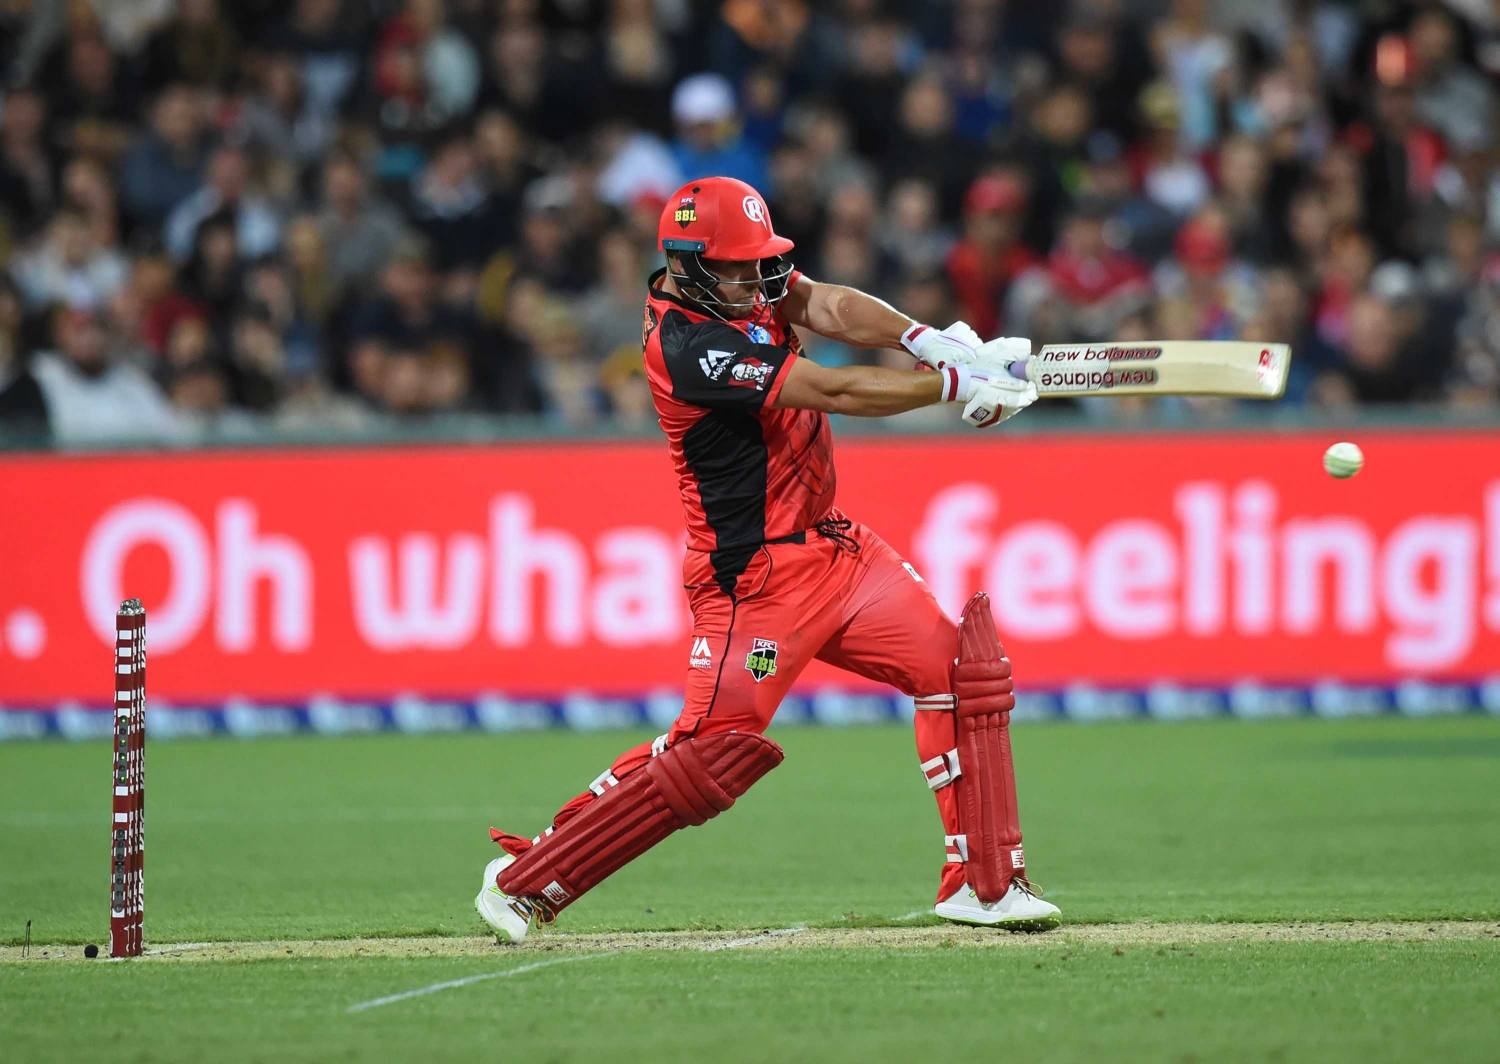 KFC BBL|08, Match 35 - Renegades vs. Stars